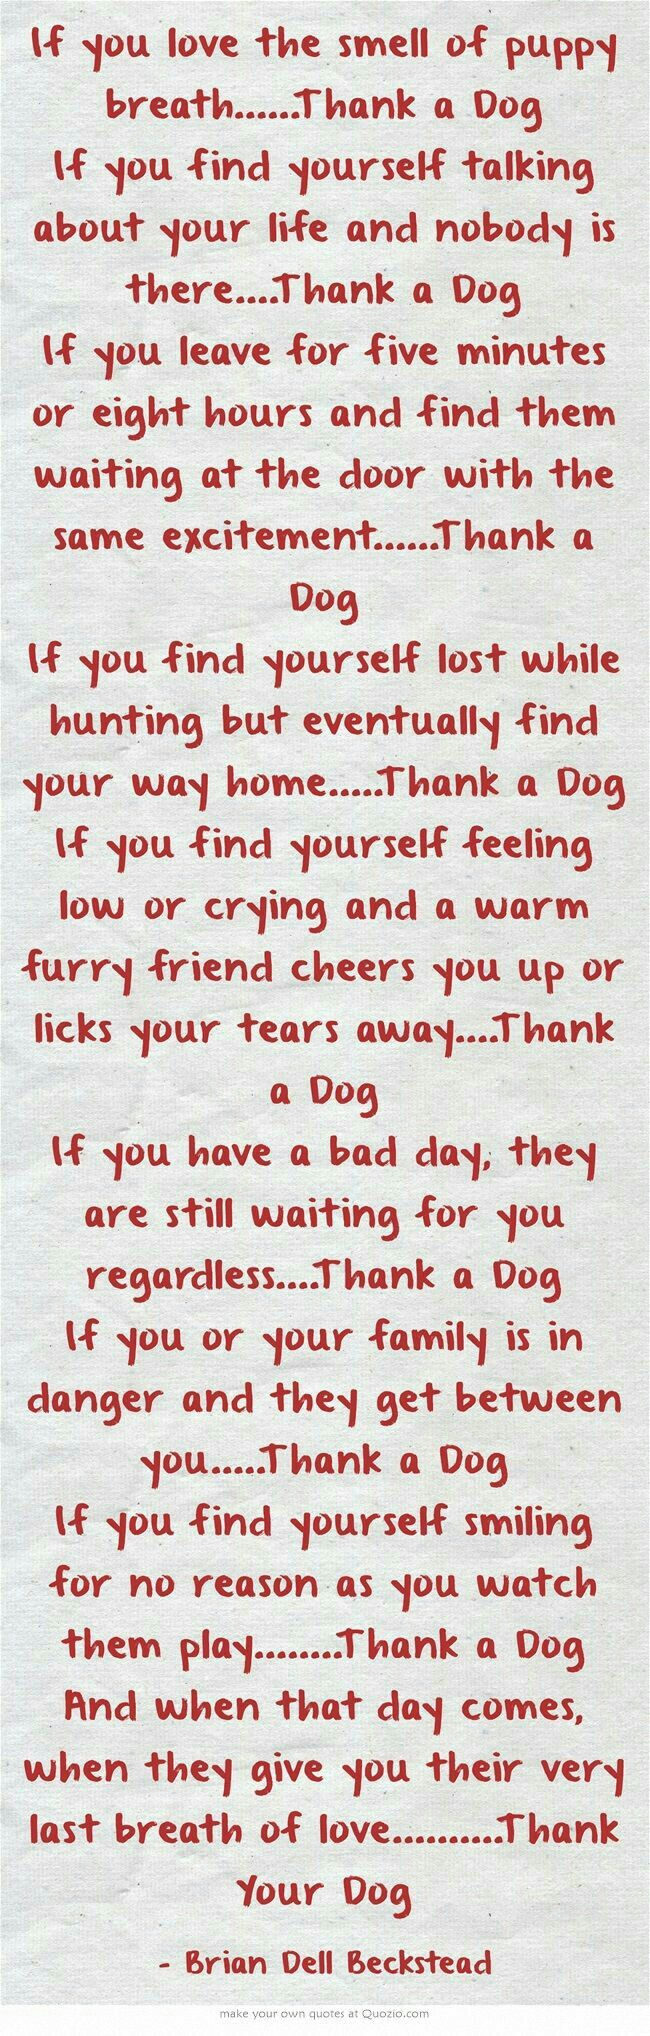 Thank your dog(s)